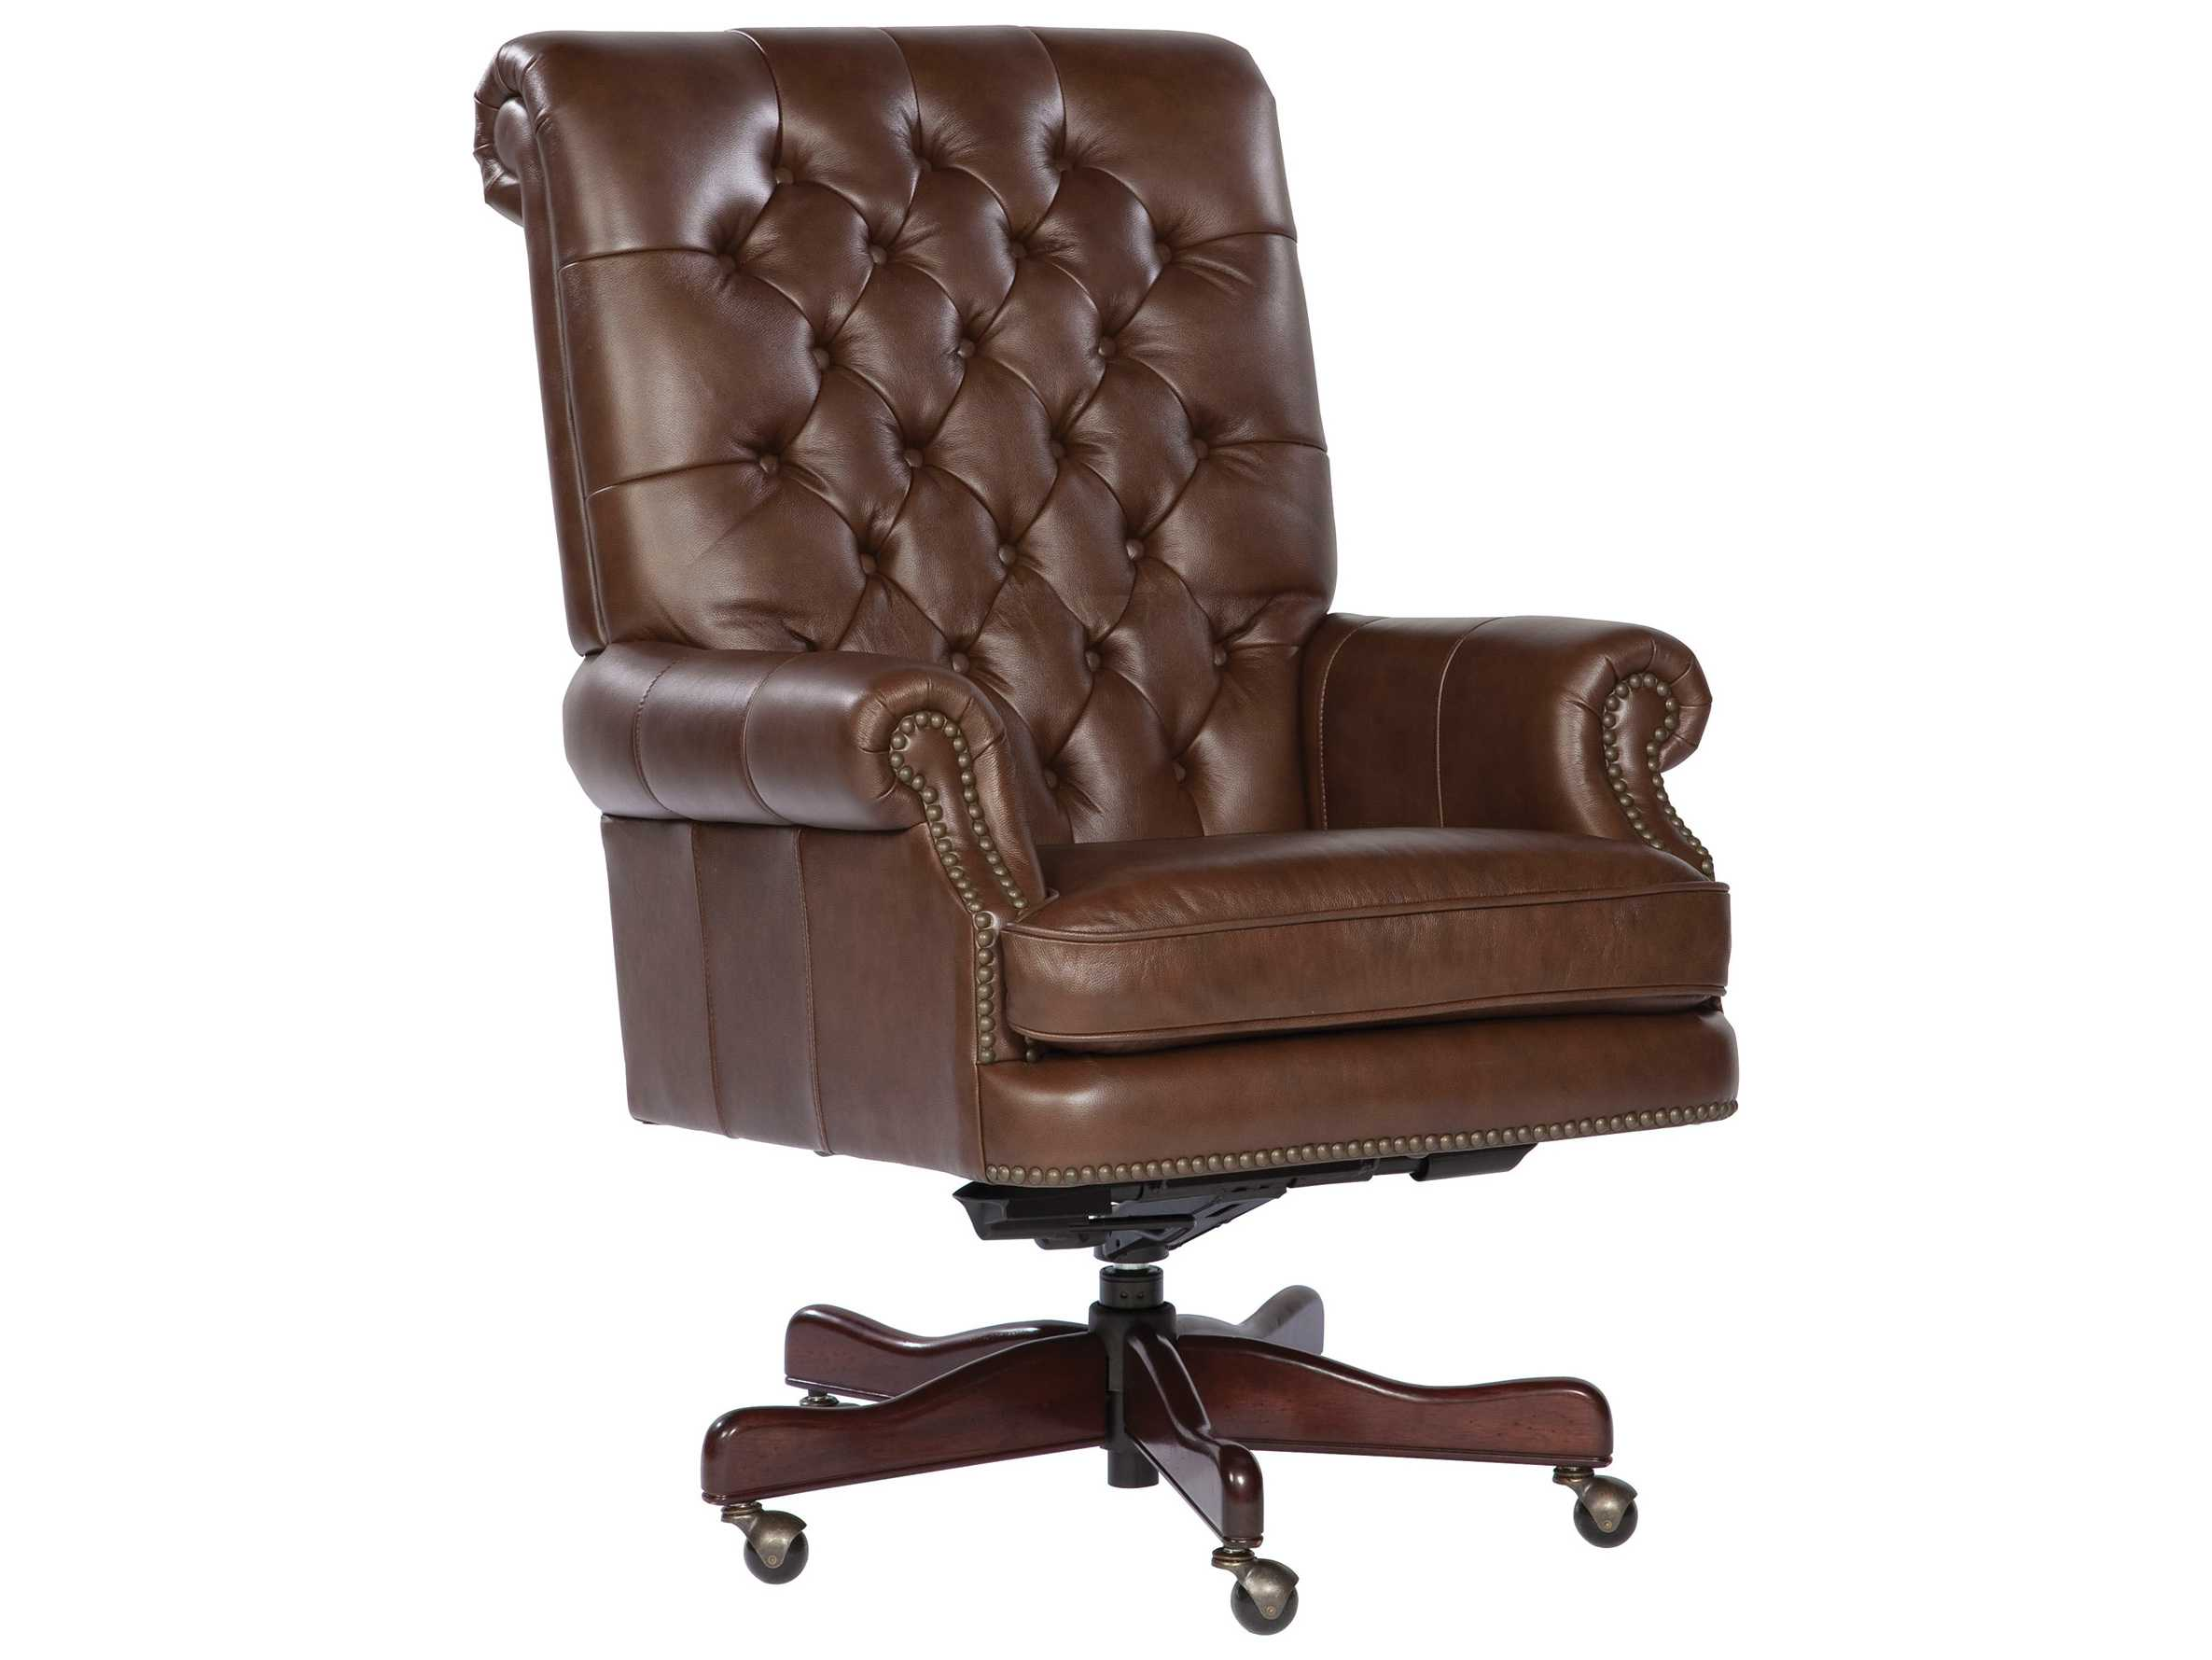 Executive Leather Chair Hekman Office Executive Tufted Back Leather Chair In Coffee